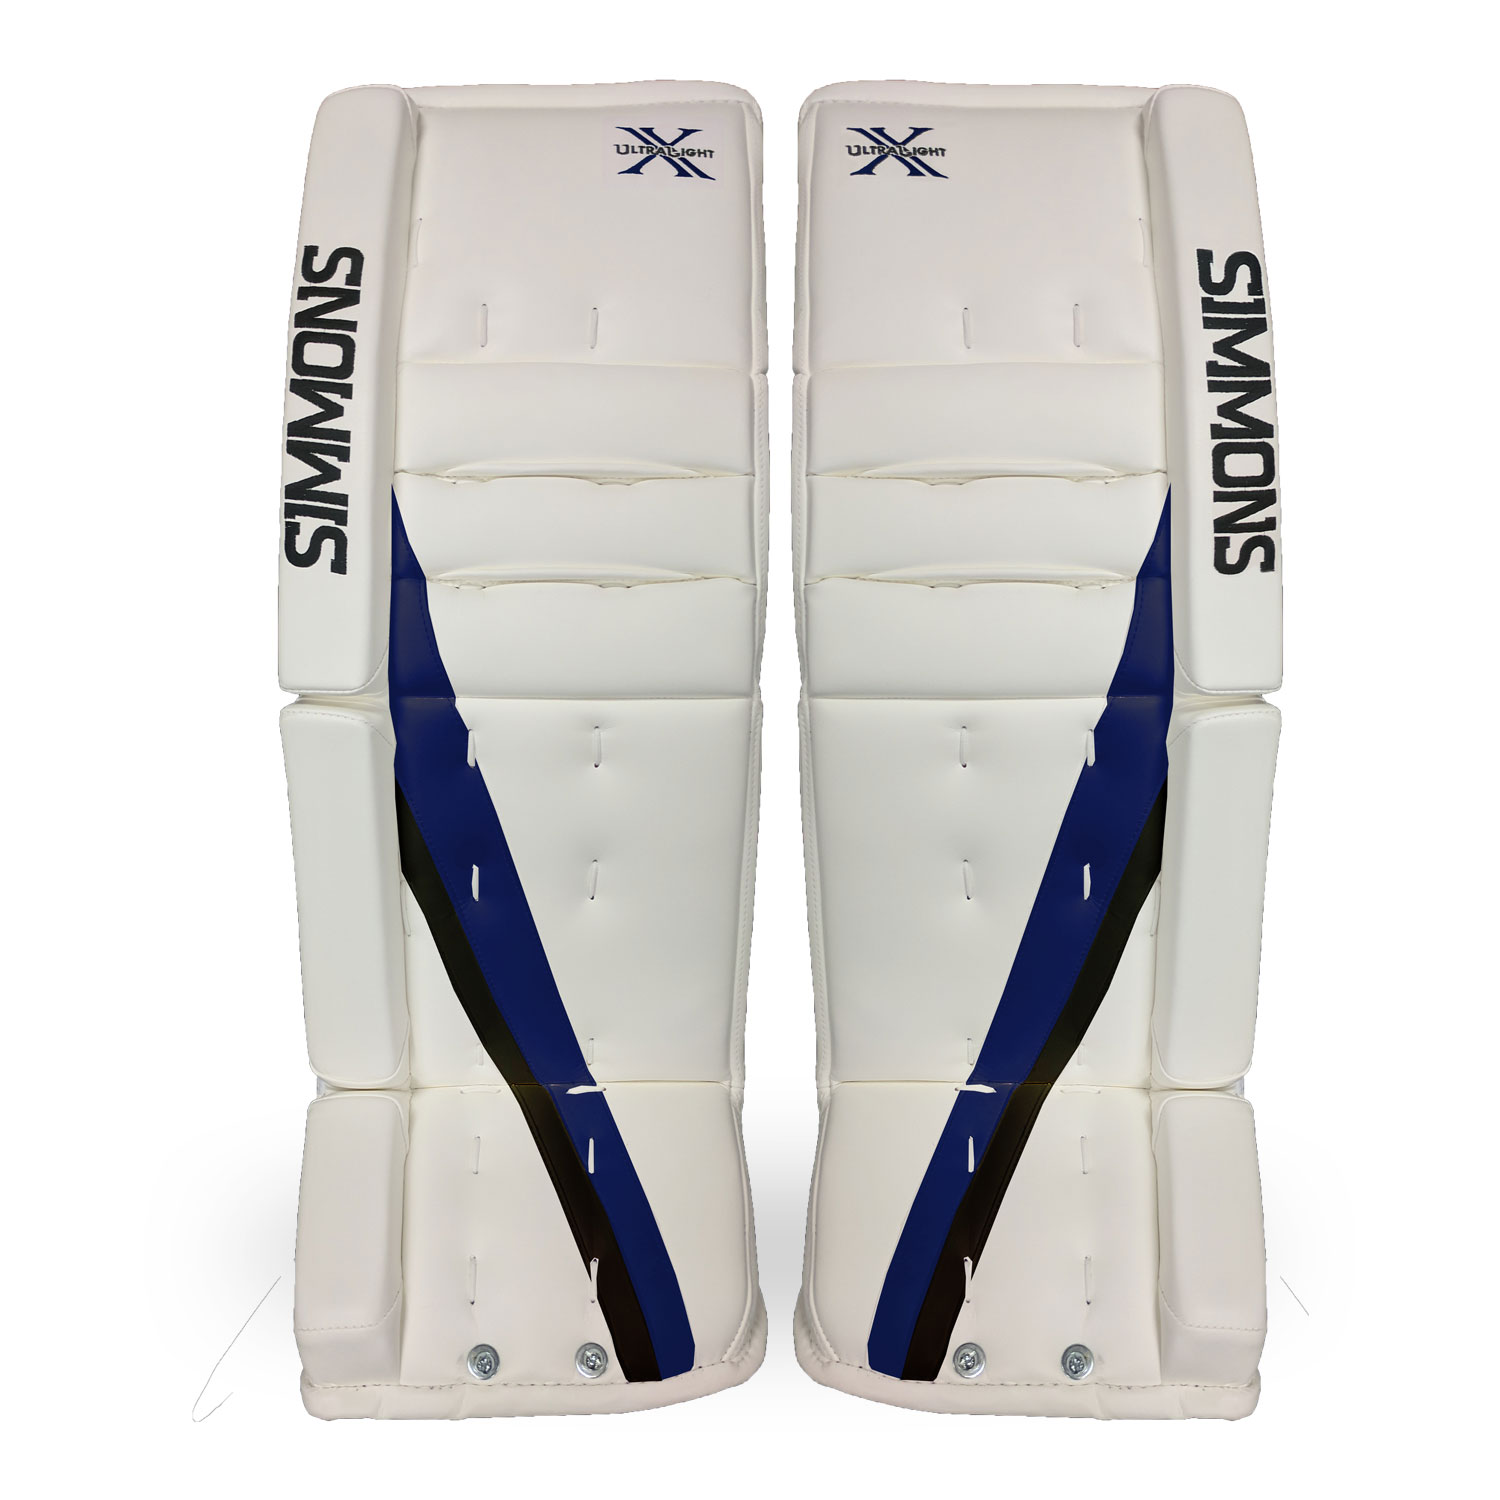 Simmons Ulx Pro Goalie Pads Simmons Hockey